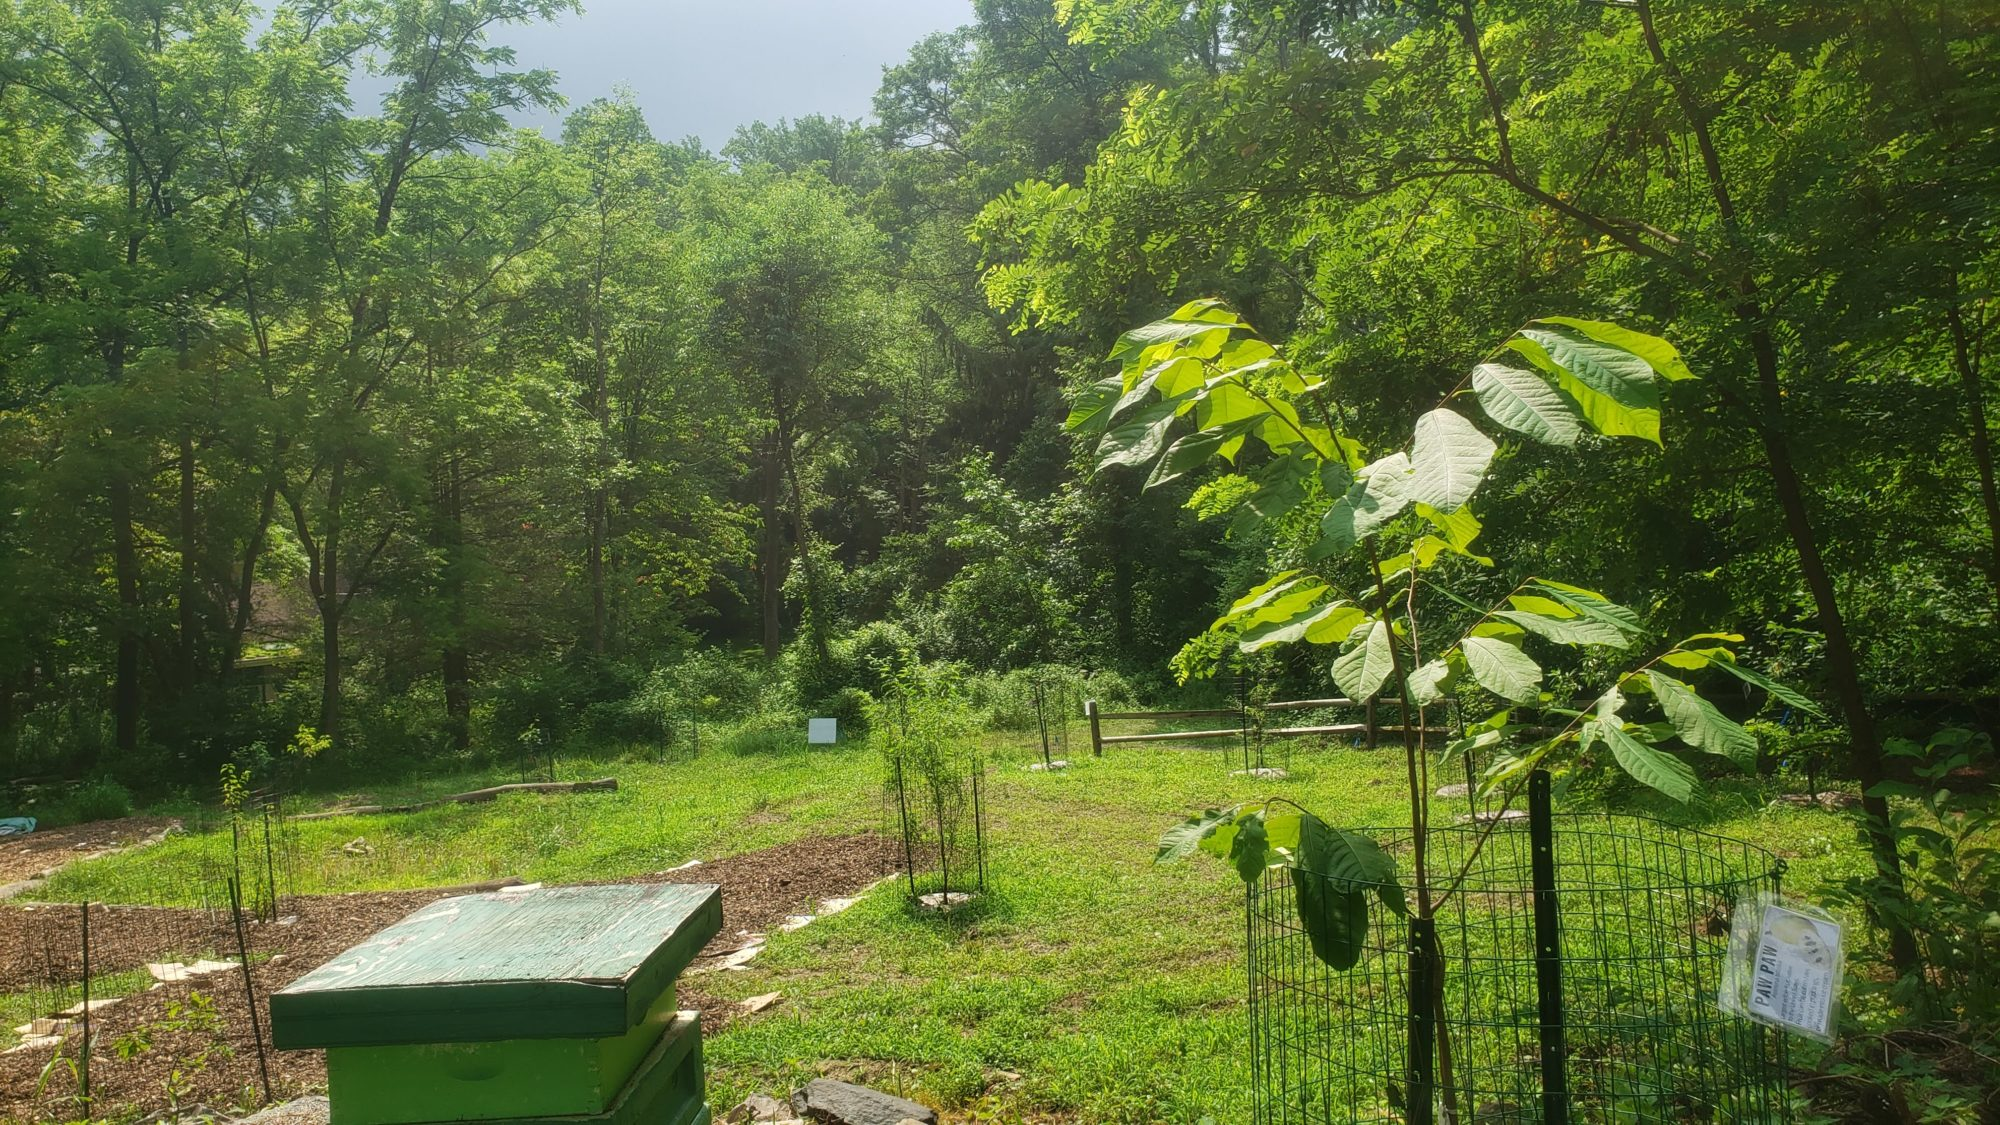 The new Food Forest in its green and leafy splendor in July 2020 (image by WEC staff)